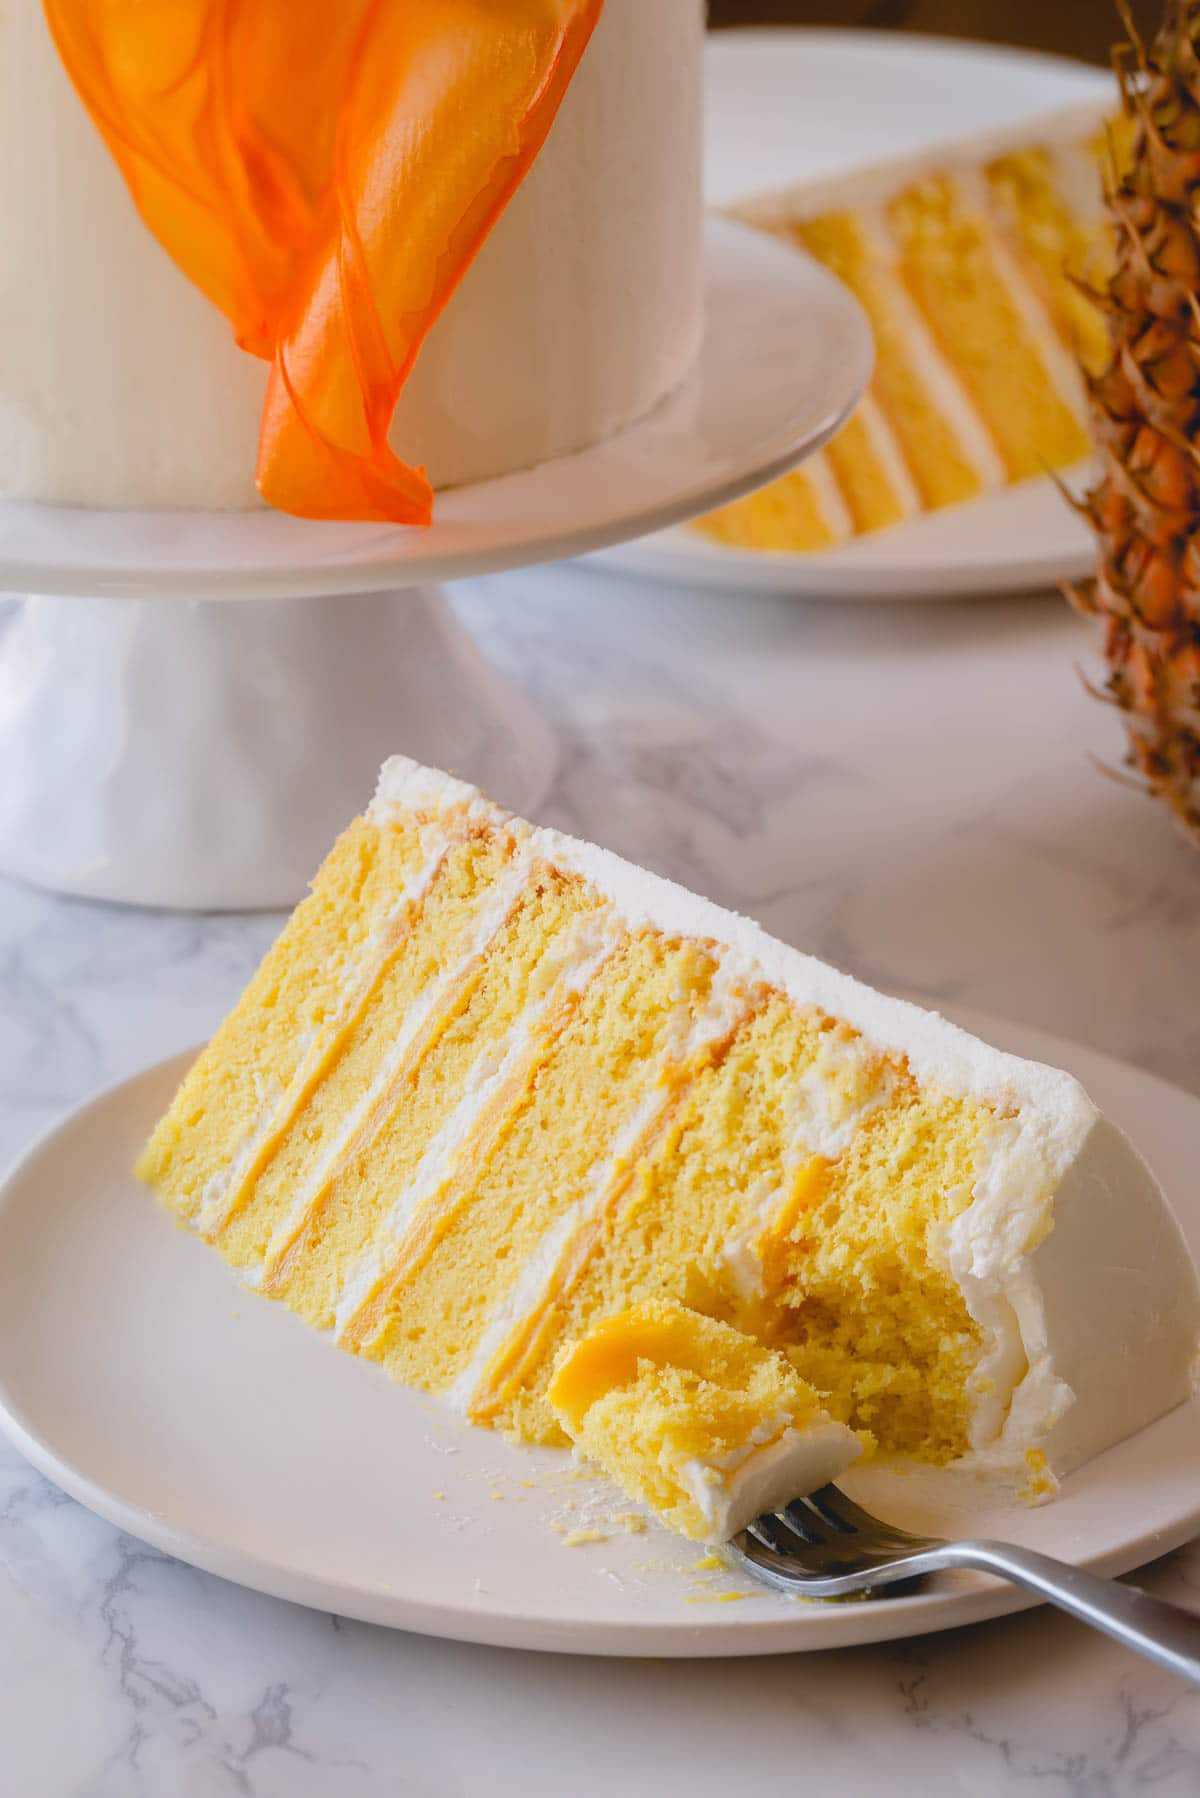 Pineapple cake on plate with fork